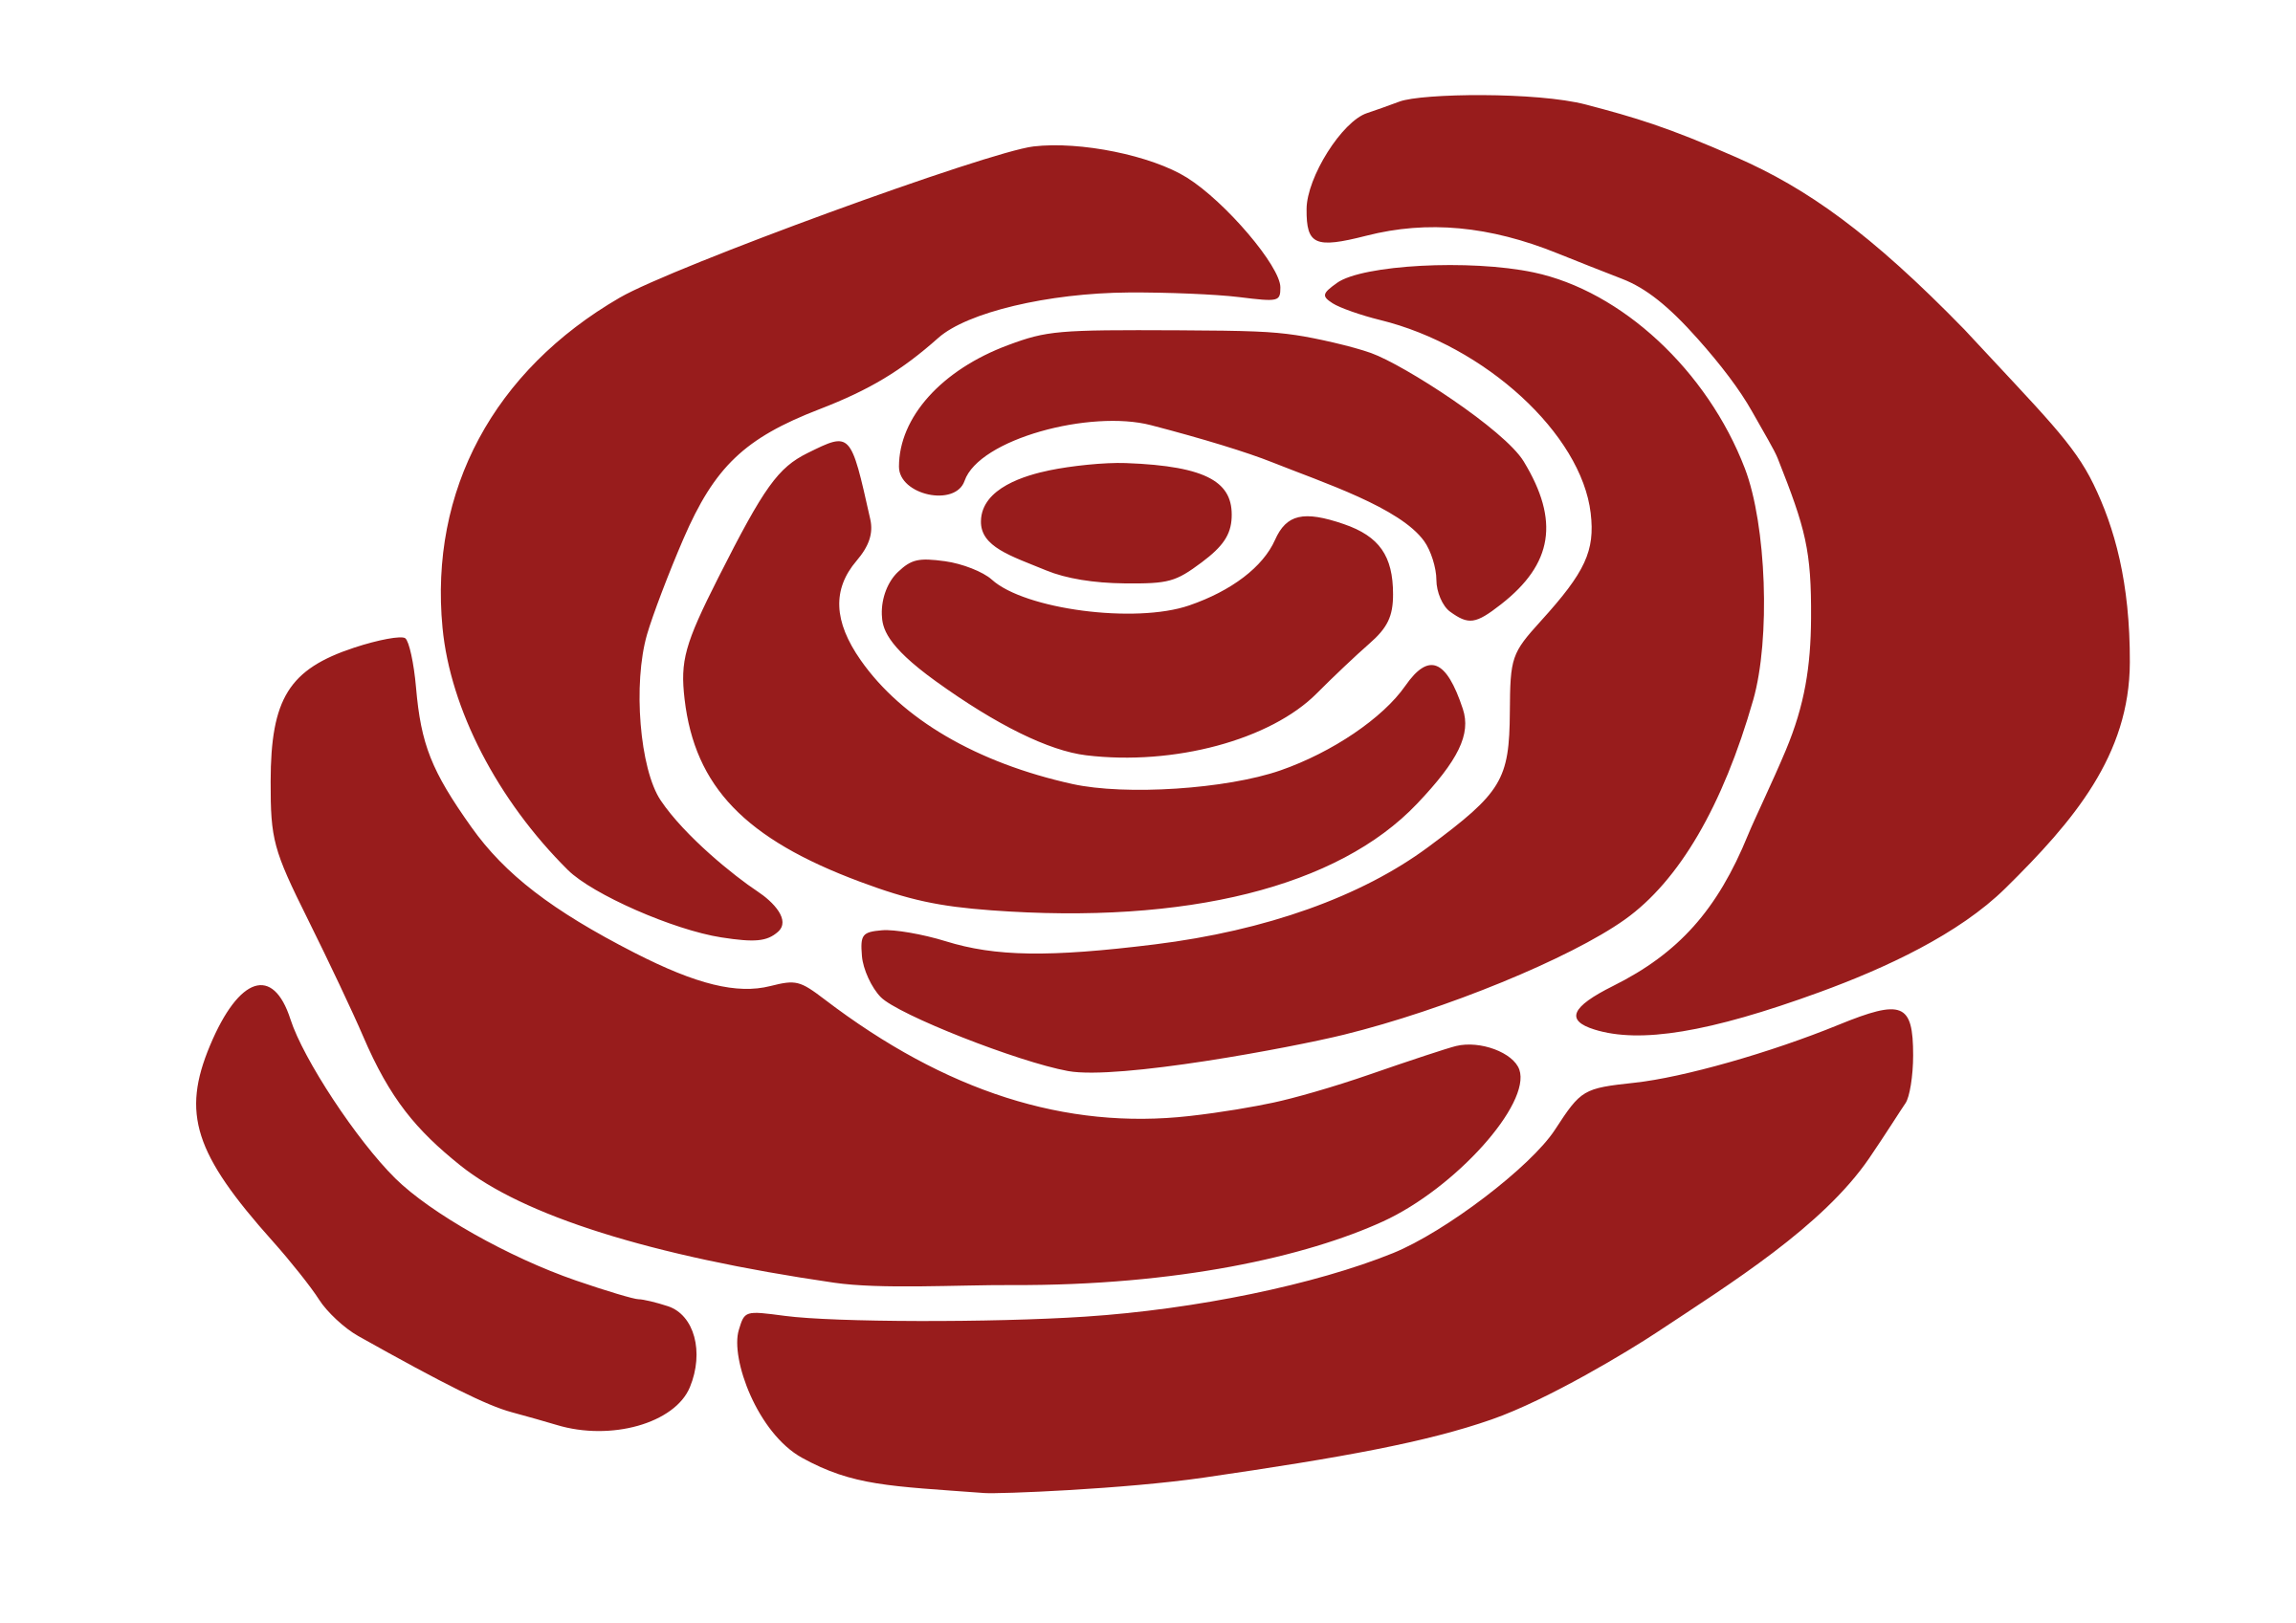 Free transparent new york rose coloring page clipart svg royalty free library Rose Silhouette Clip art - rose vector png download - 2400*1697 ... svg royalty free library